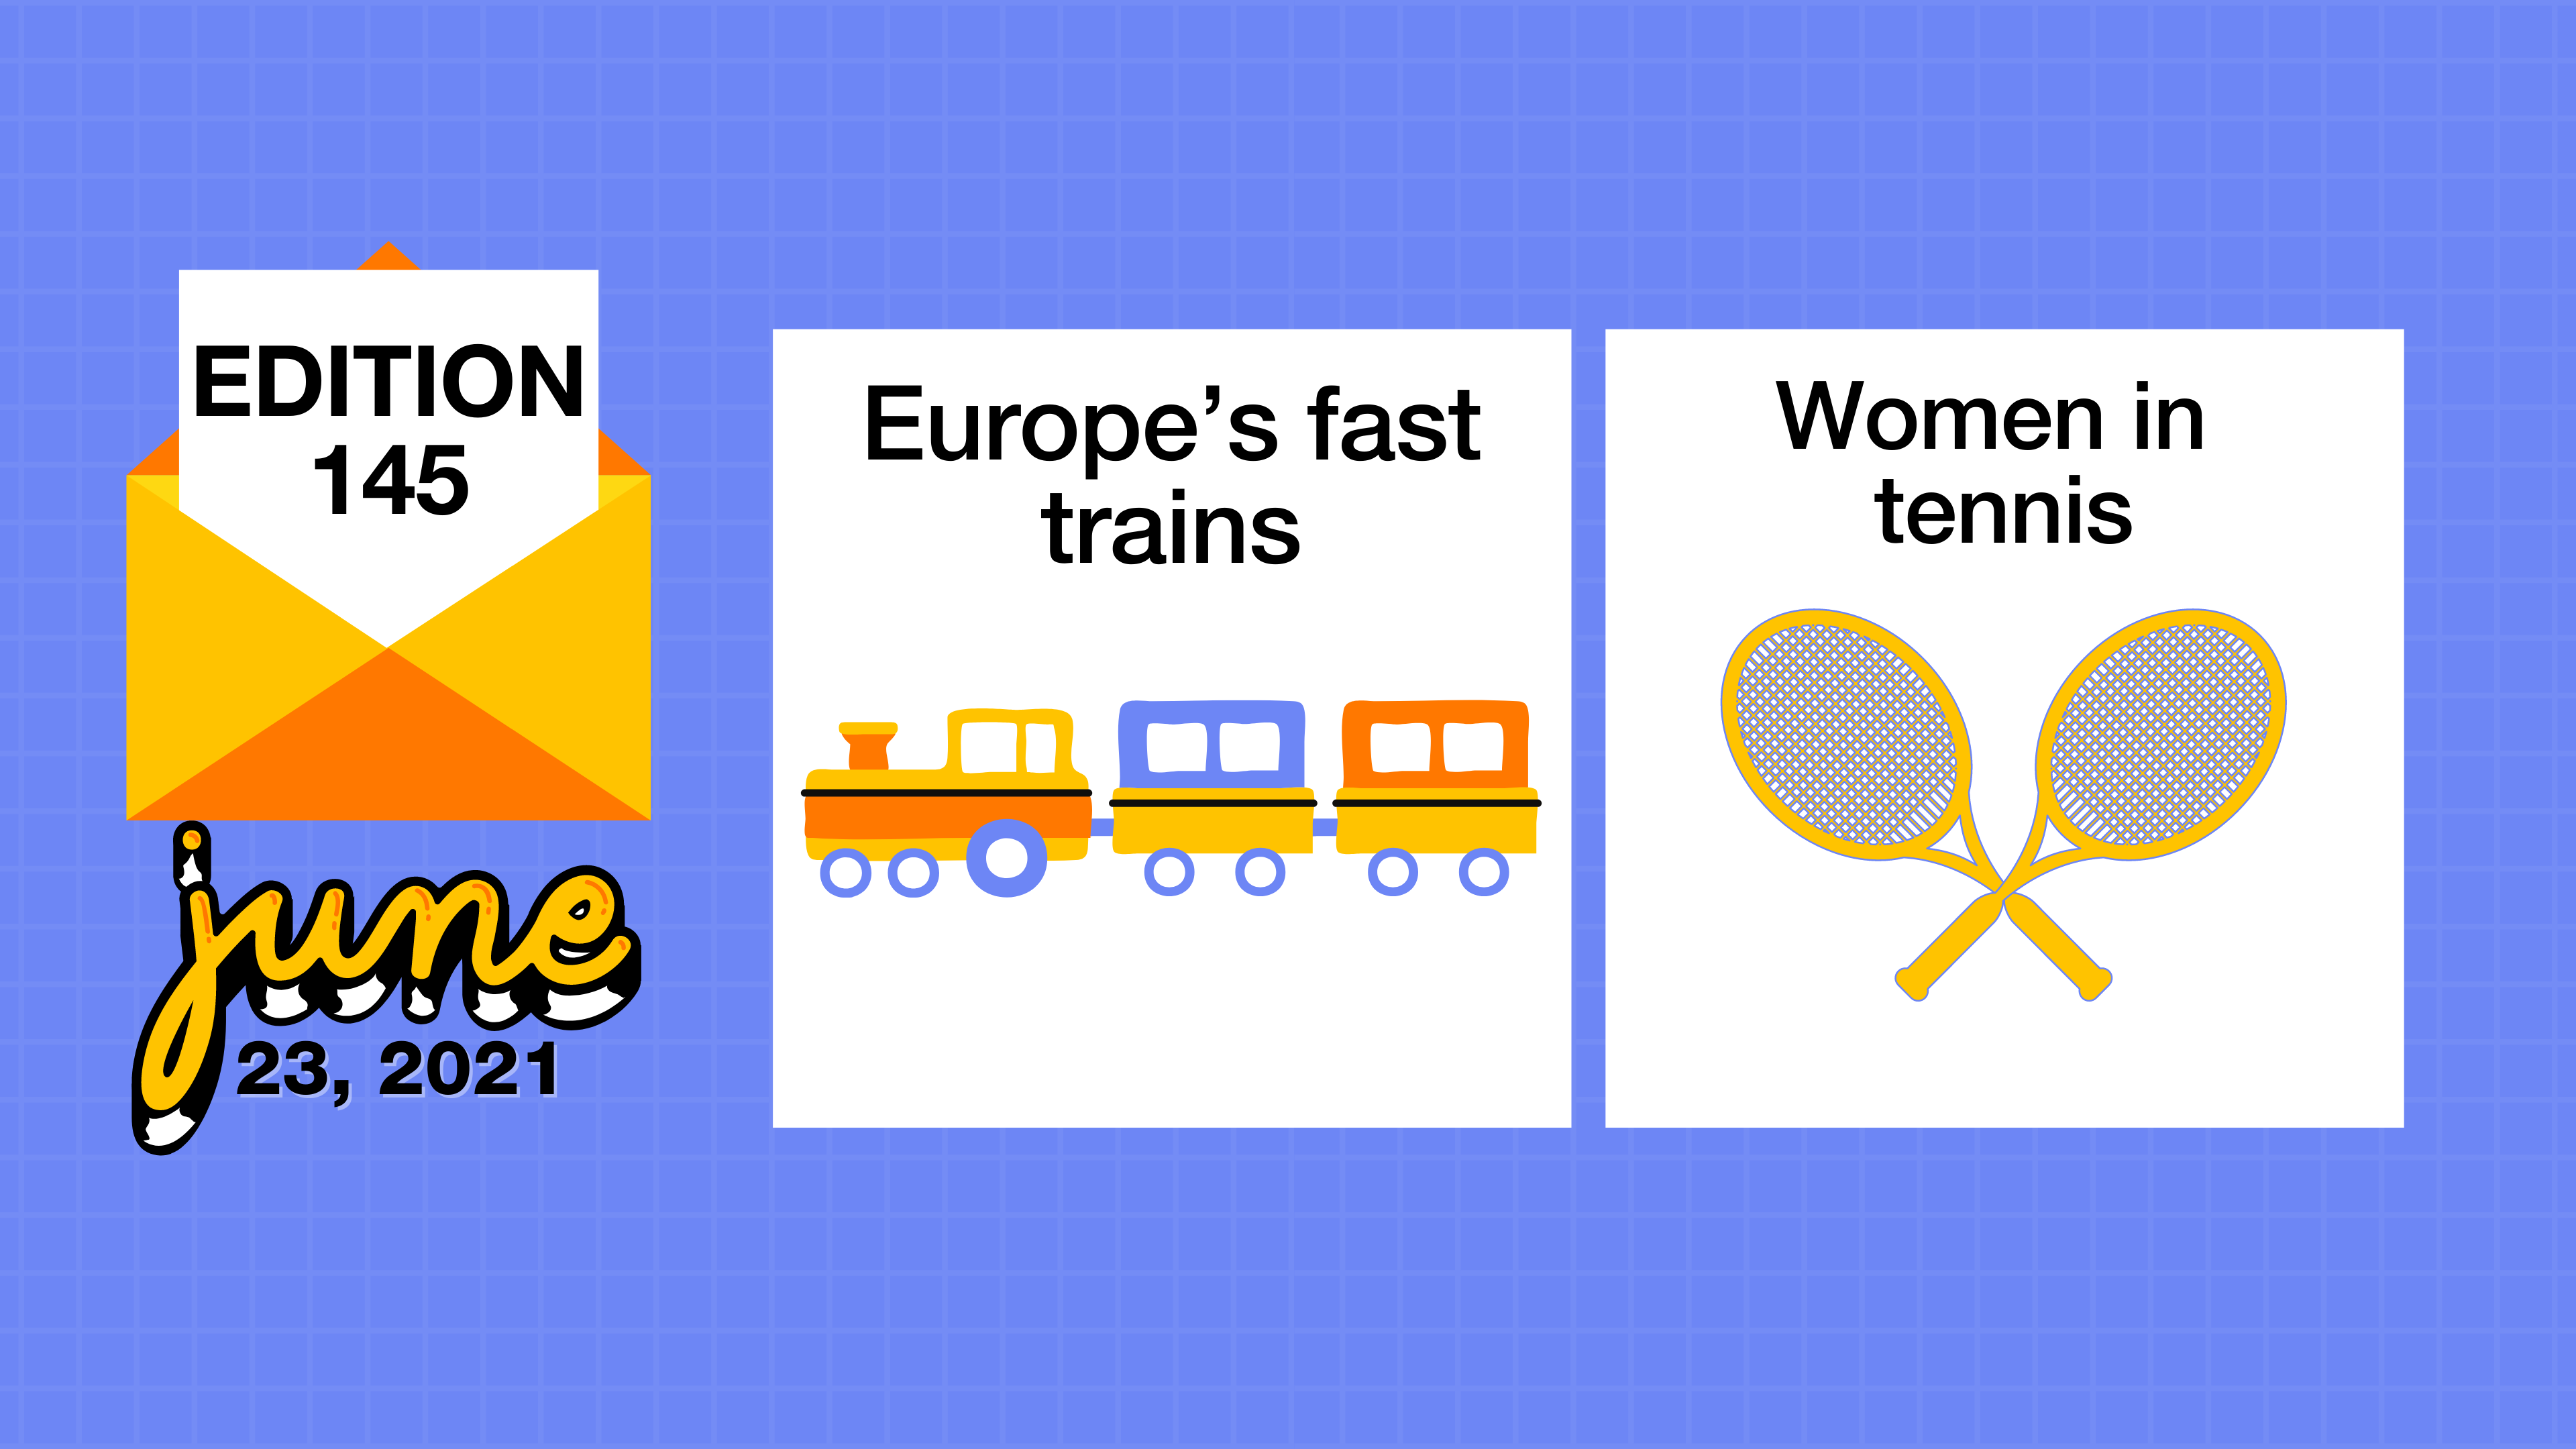 Europe's fast trains and women in tennis